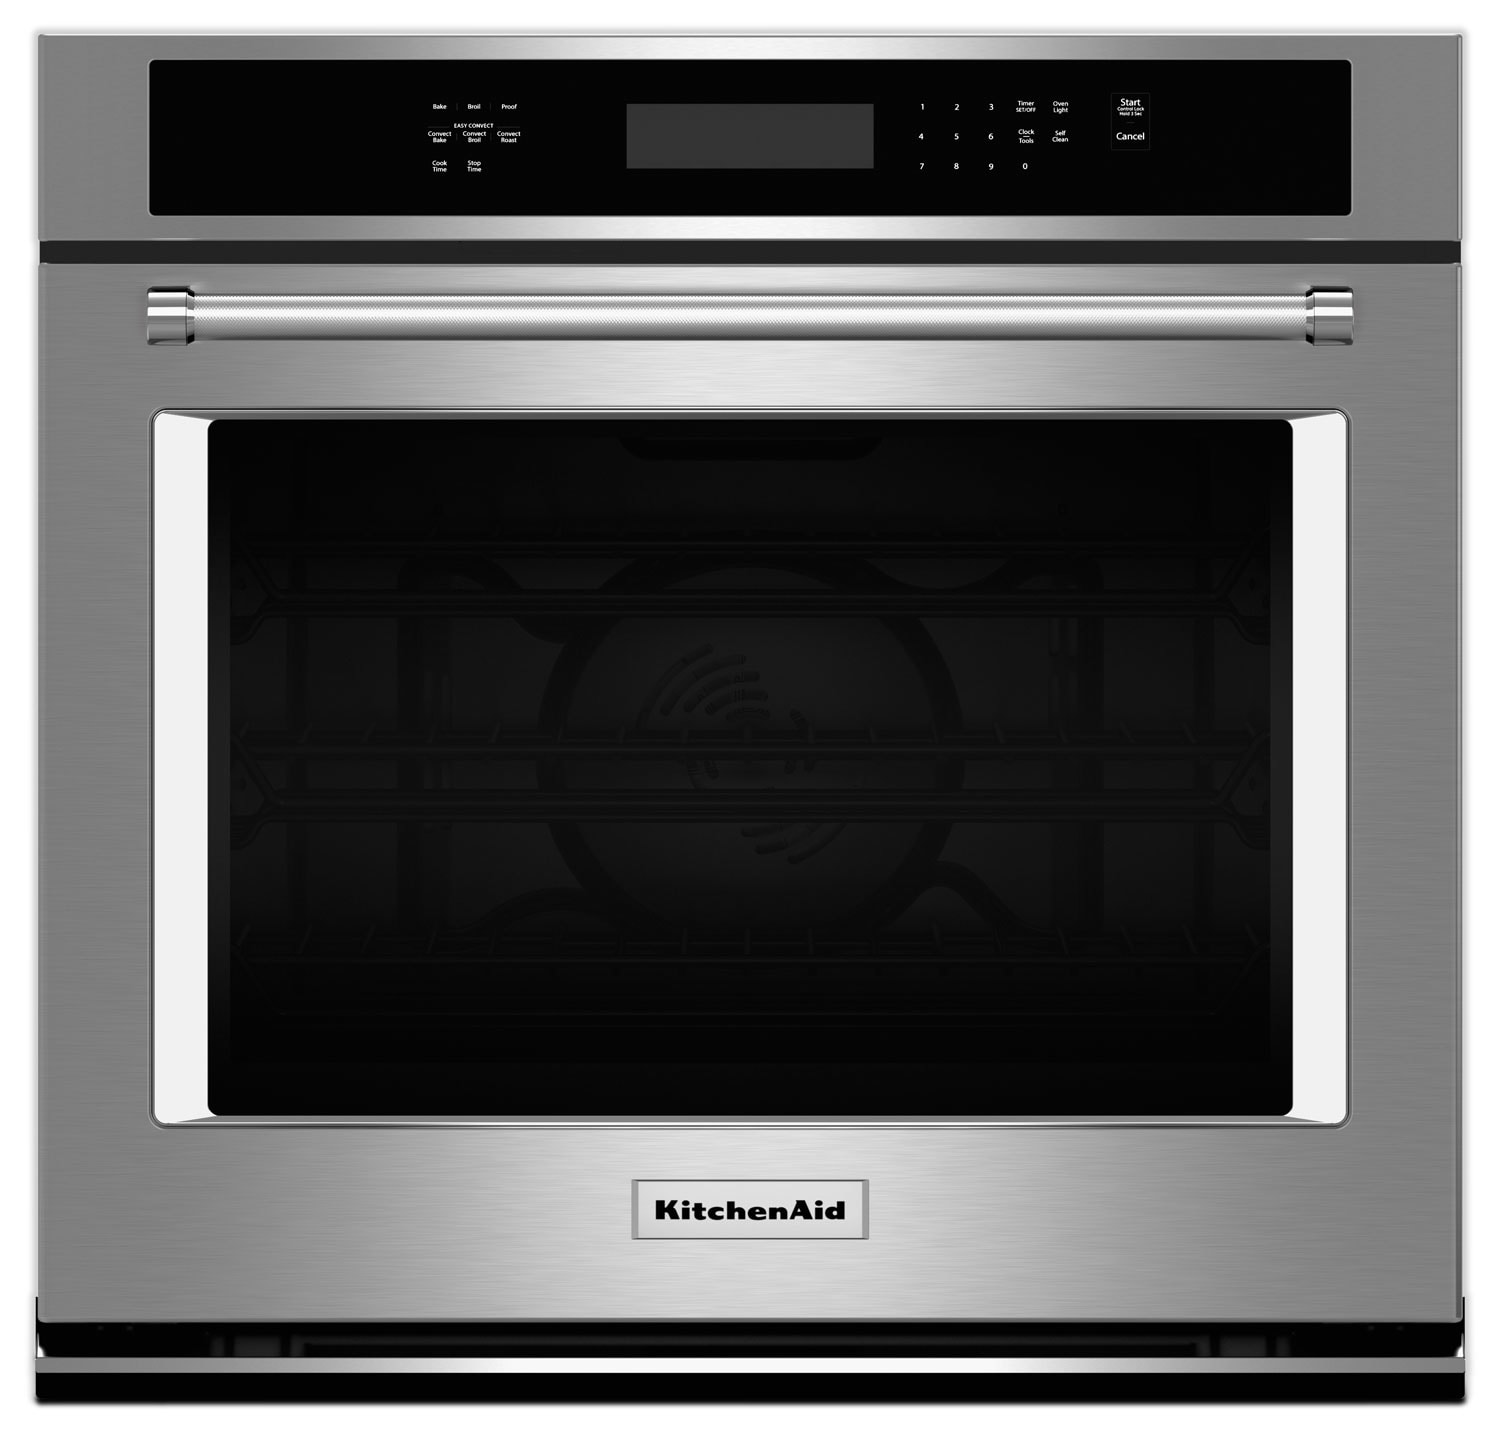 Cooking Products - KitchenAid 4.3 Cu. Ft. Single Wall Oven with Even-Heat™ True Convection - Stainless Steel